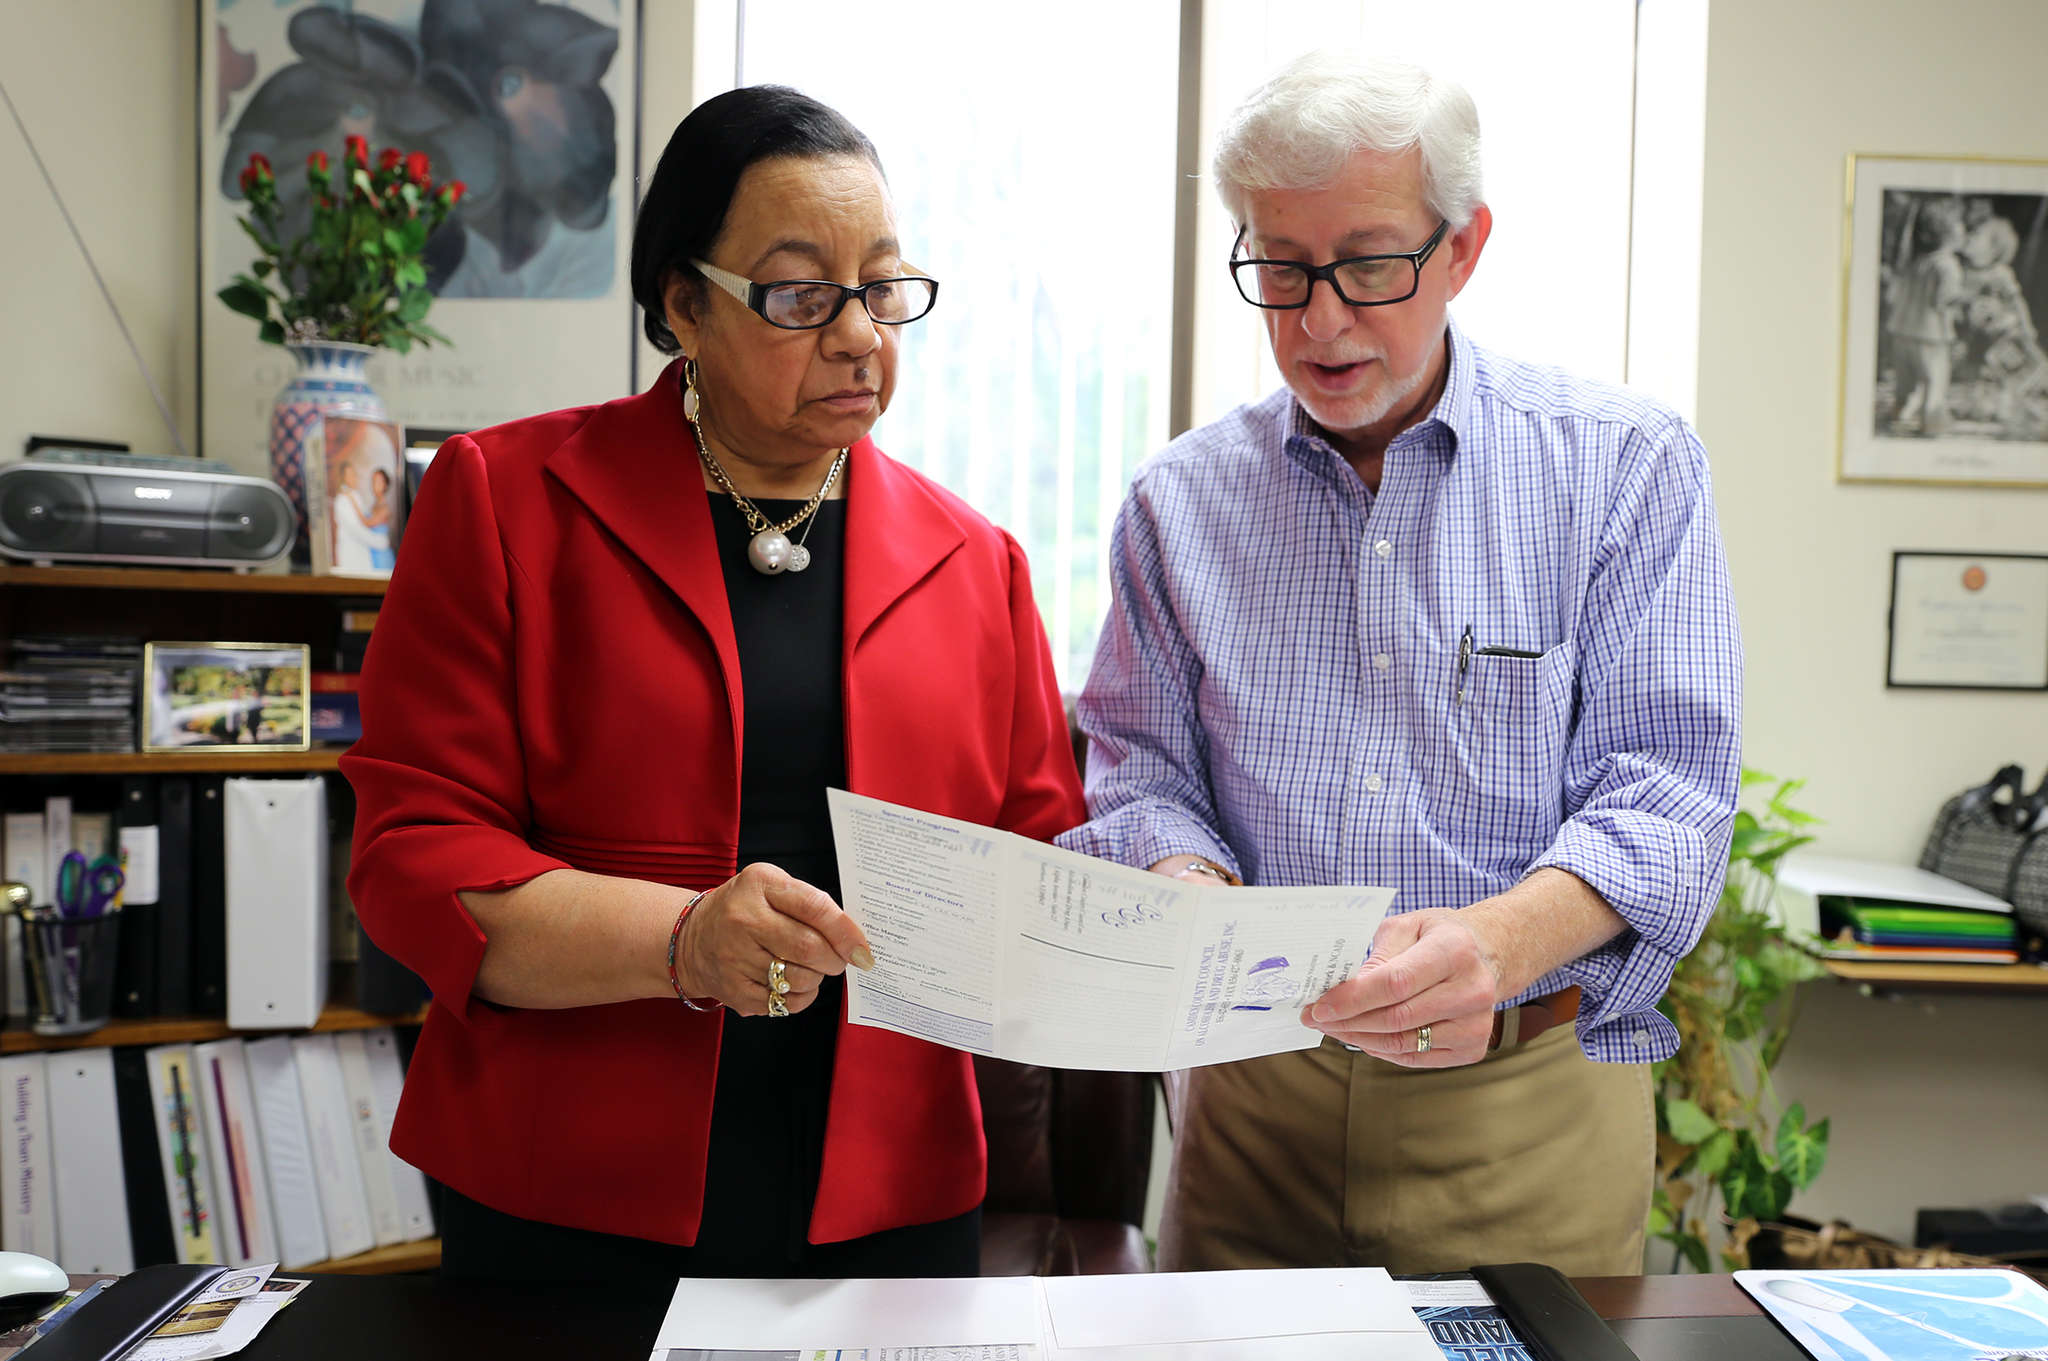 Camden County Council on Alcoholism and Drug Abuse Inc. founding executive director Naomi L. Hubbard and board president Bart Leff.